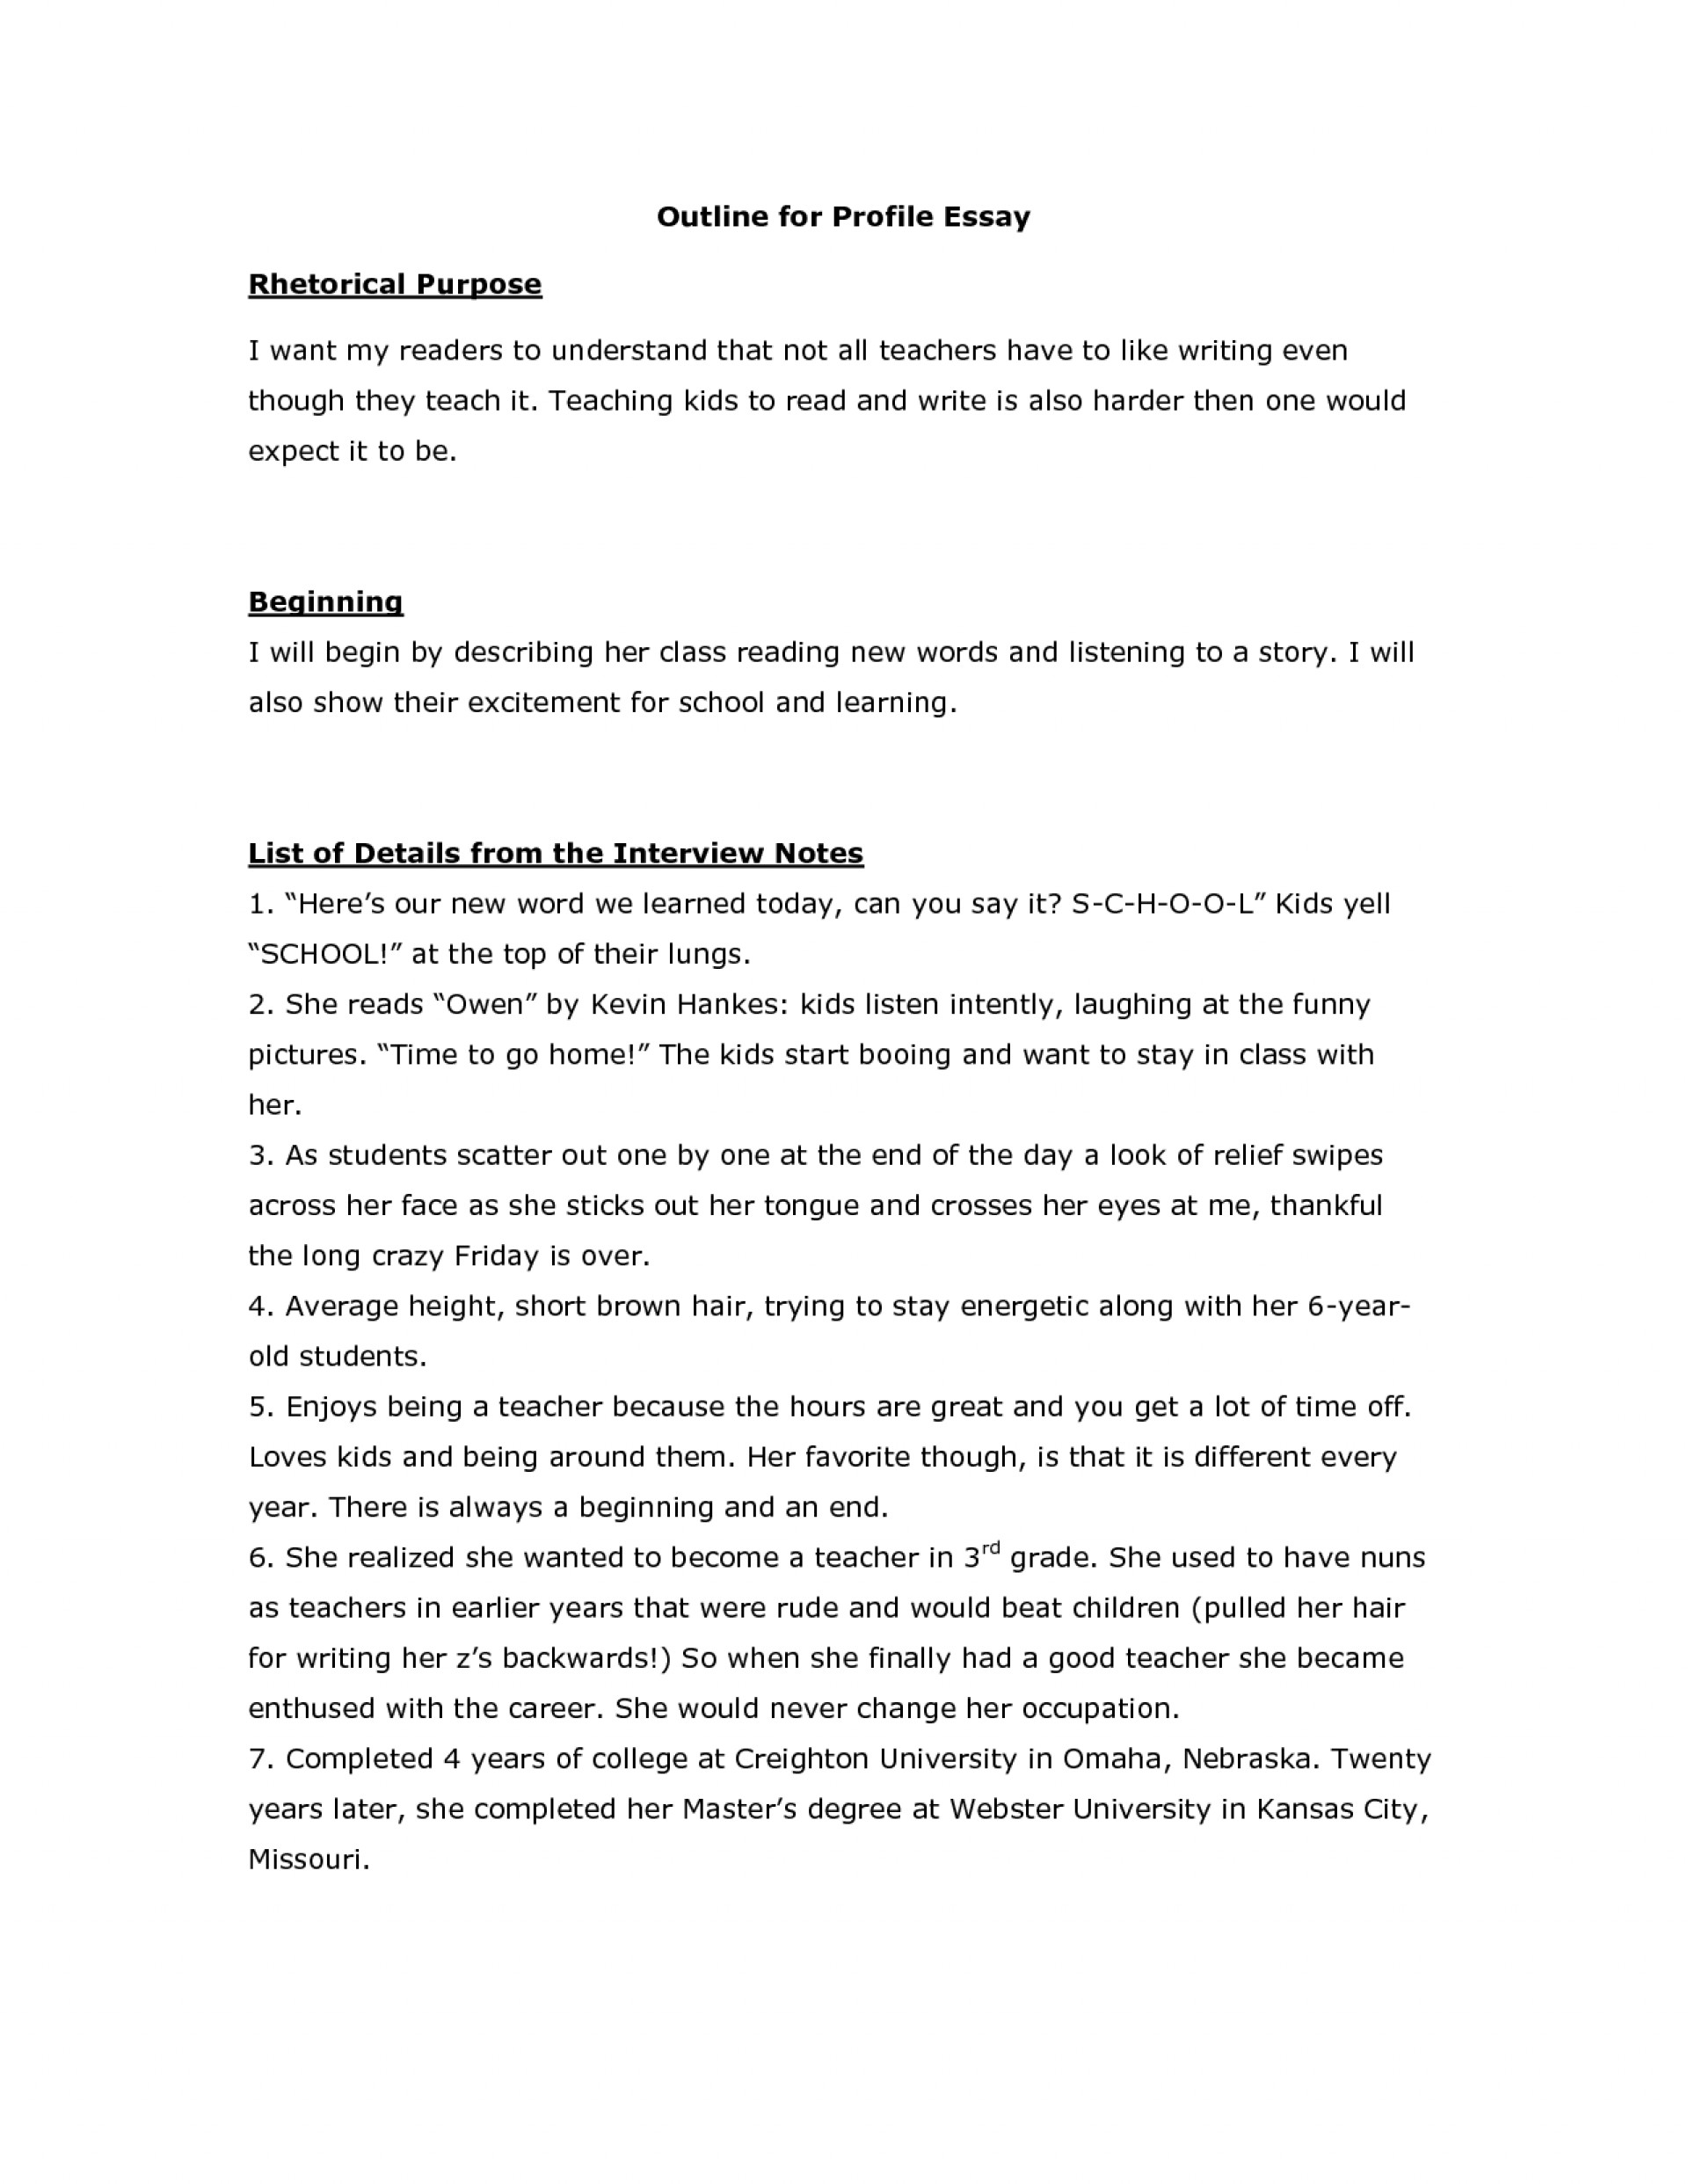 003 Profile Essay Outline Example Personality Topics Examples Of Big Five Samples My Singular Layout Paper 1920